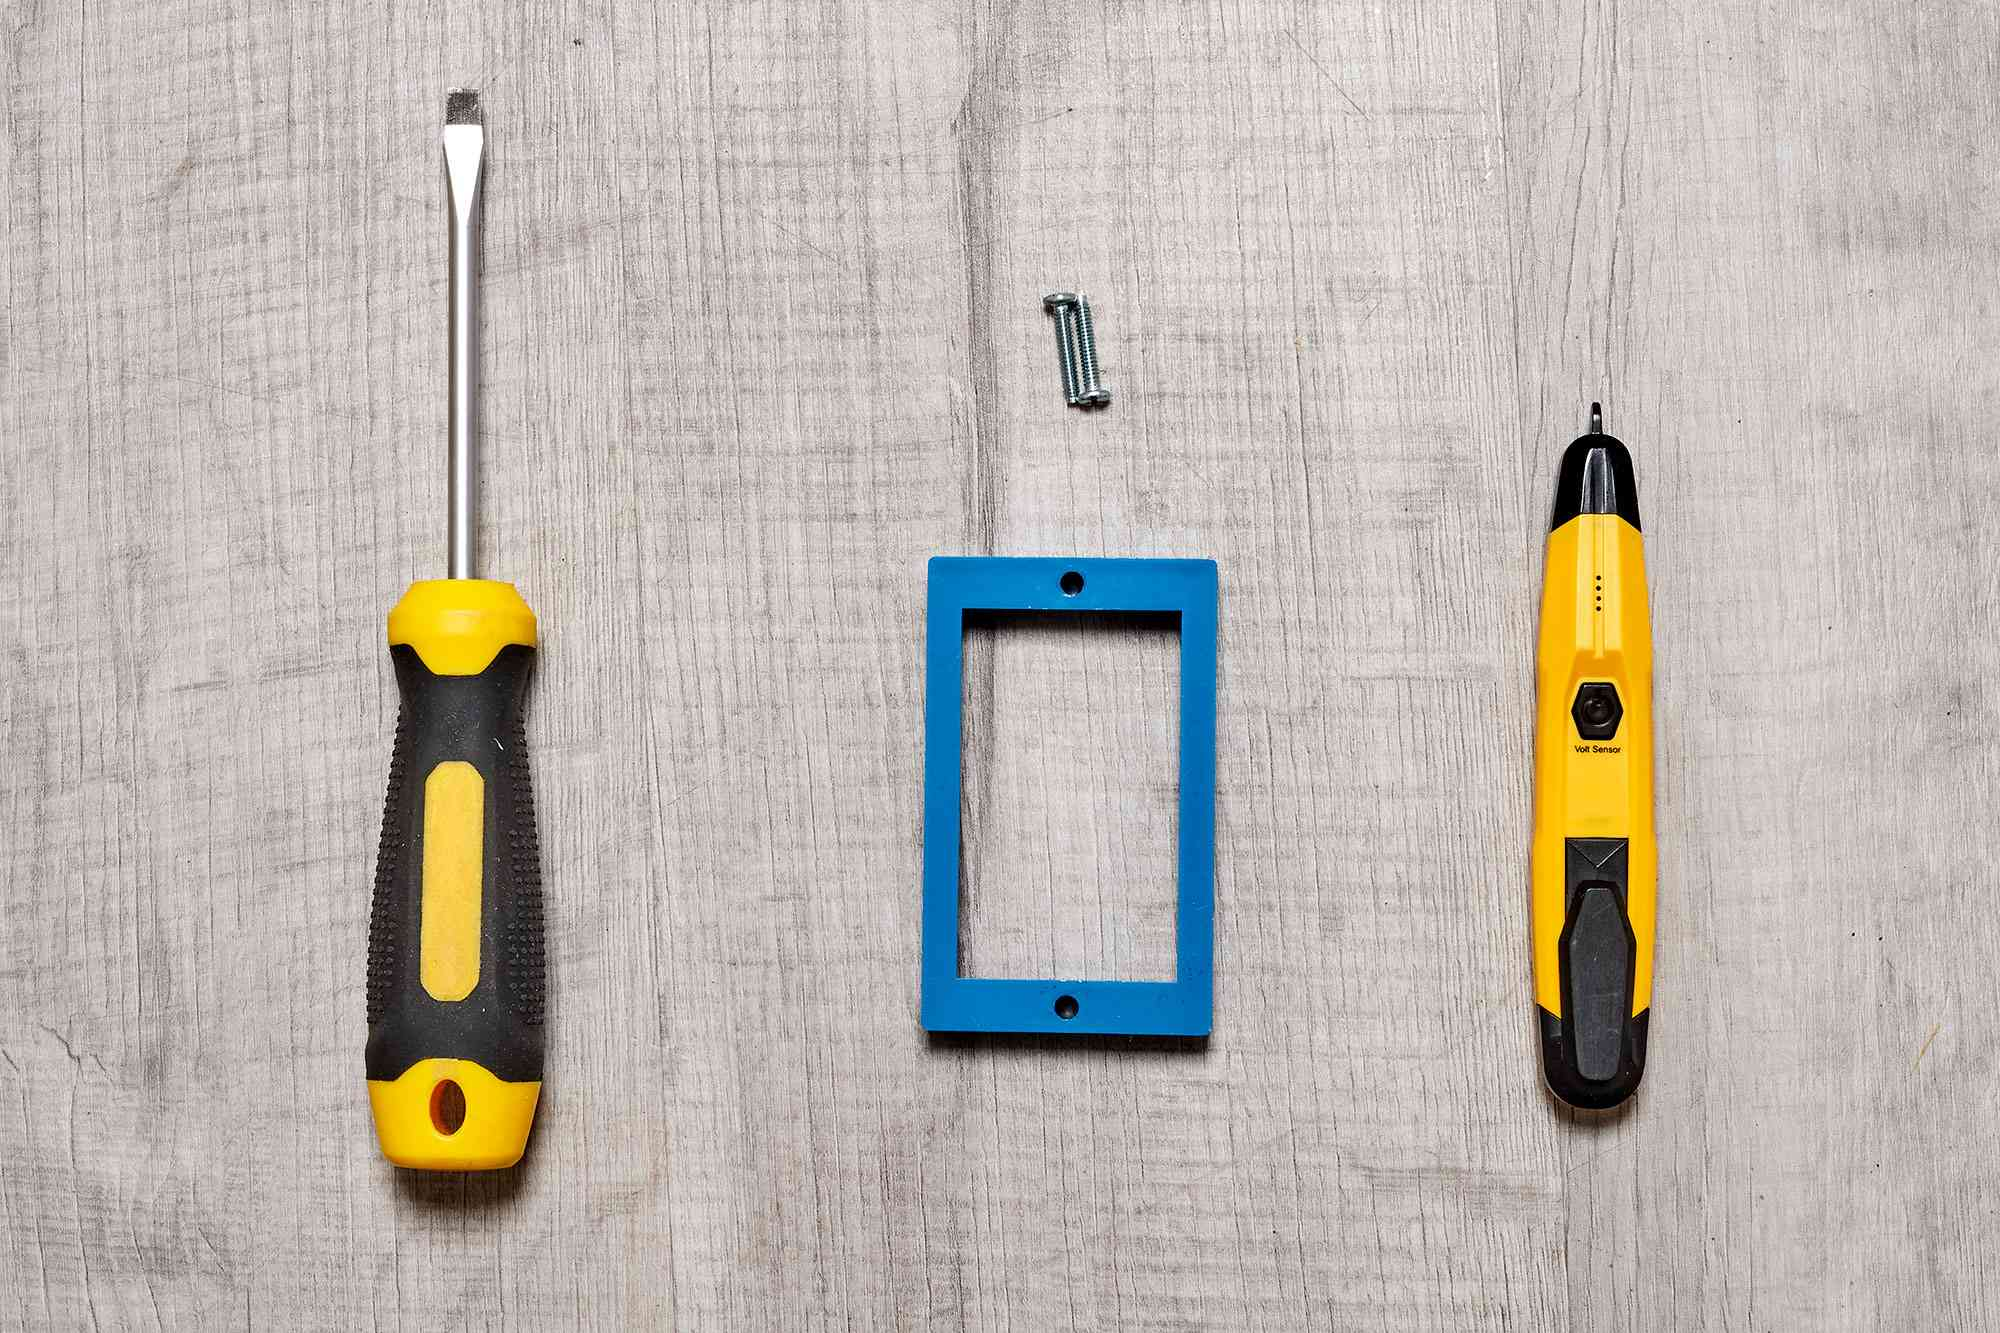 Materials and tools to use an electrical box extender